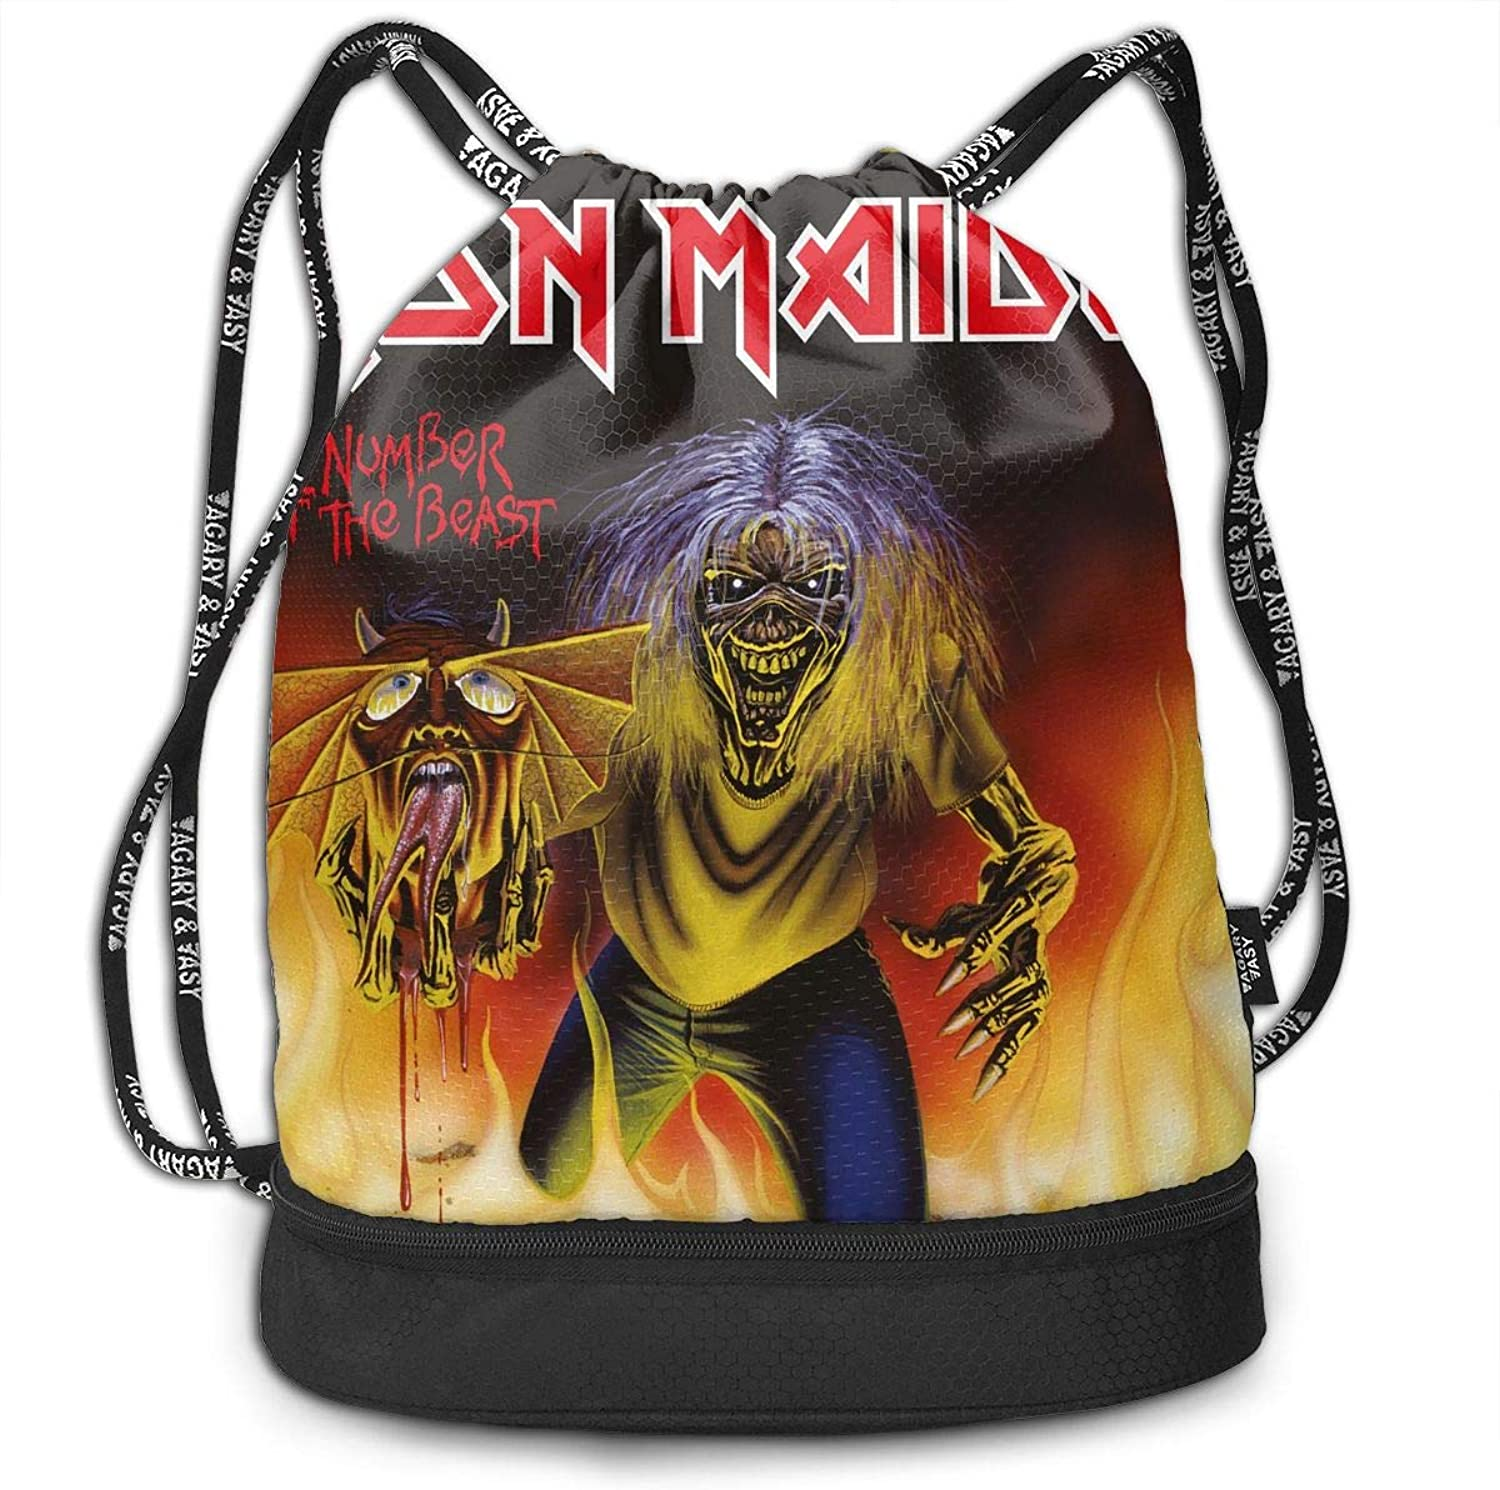 Gymsack Iron Maiden The Number of The Beast Print Drawstring Bags  Simple Hiking Sack